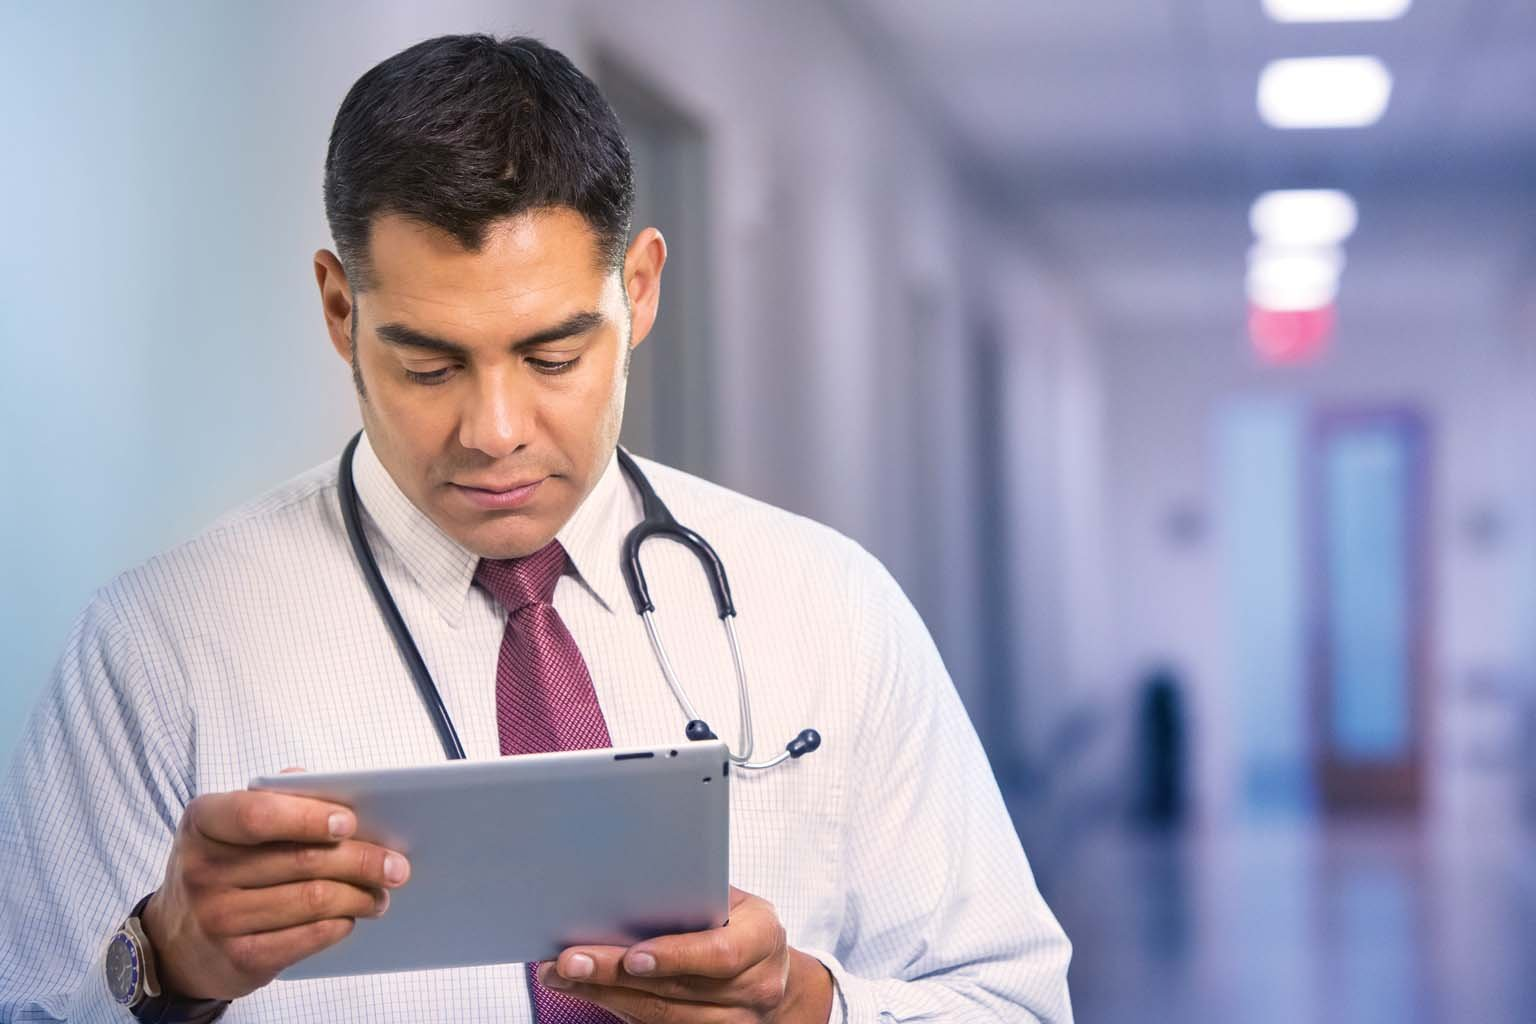 doctor paused in hallway looking at tablet